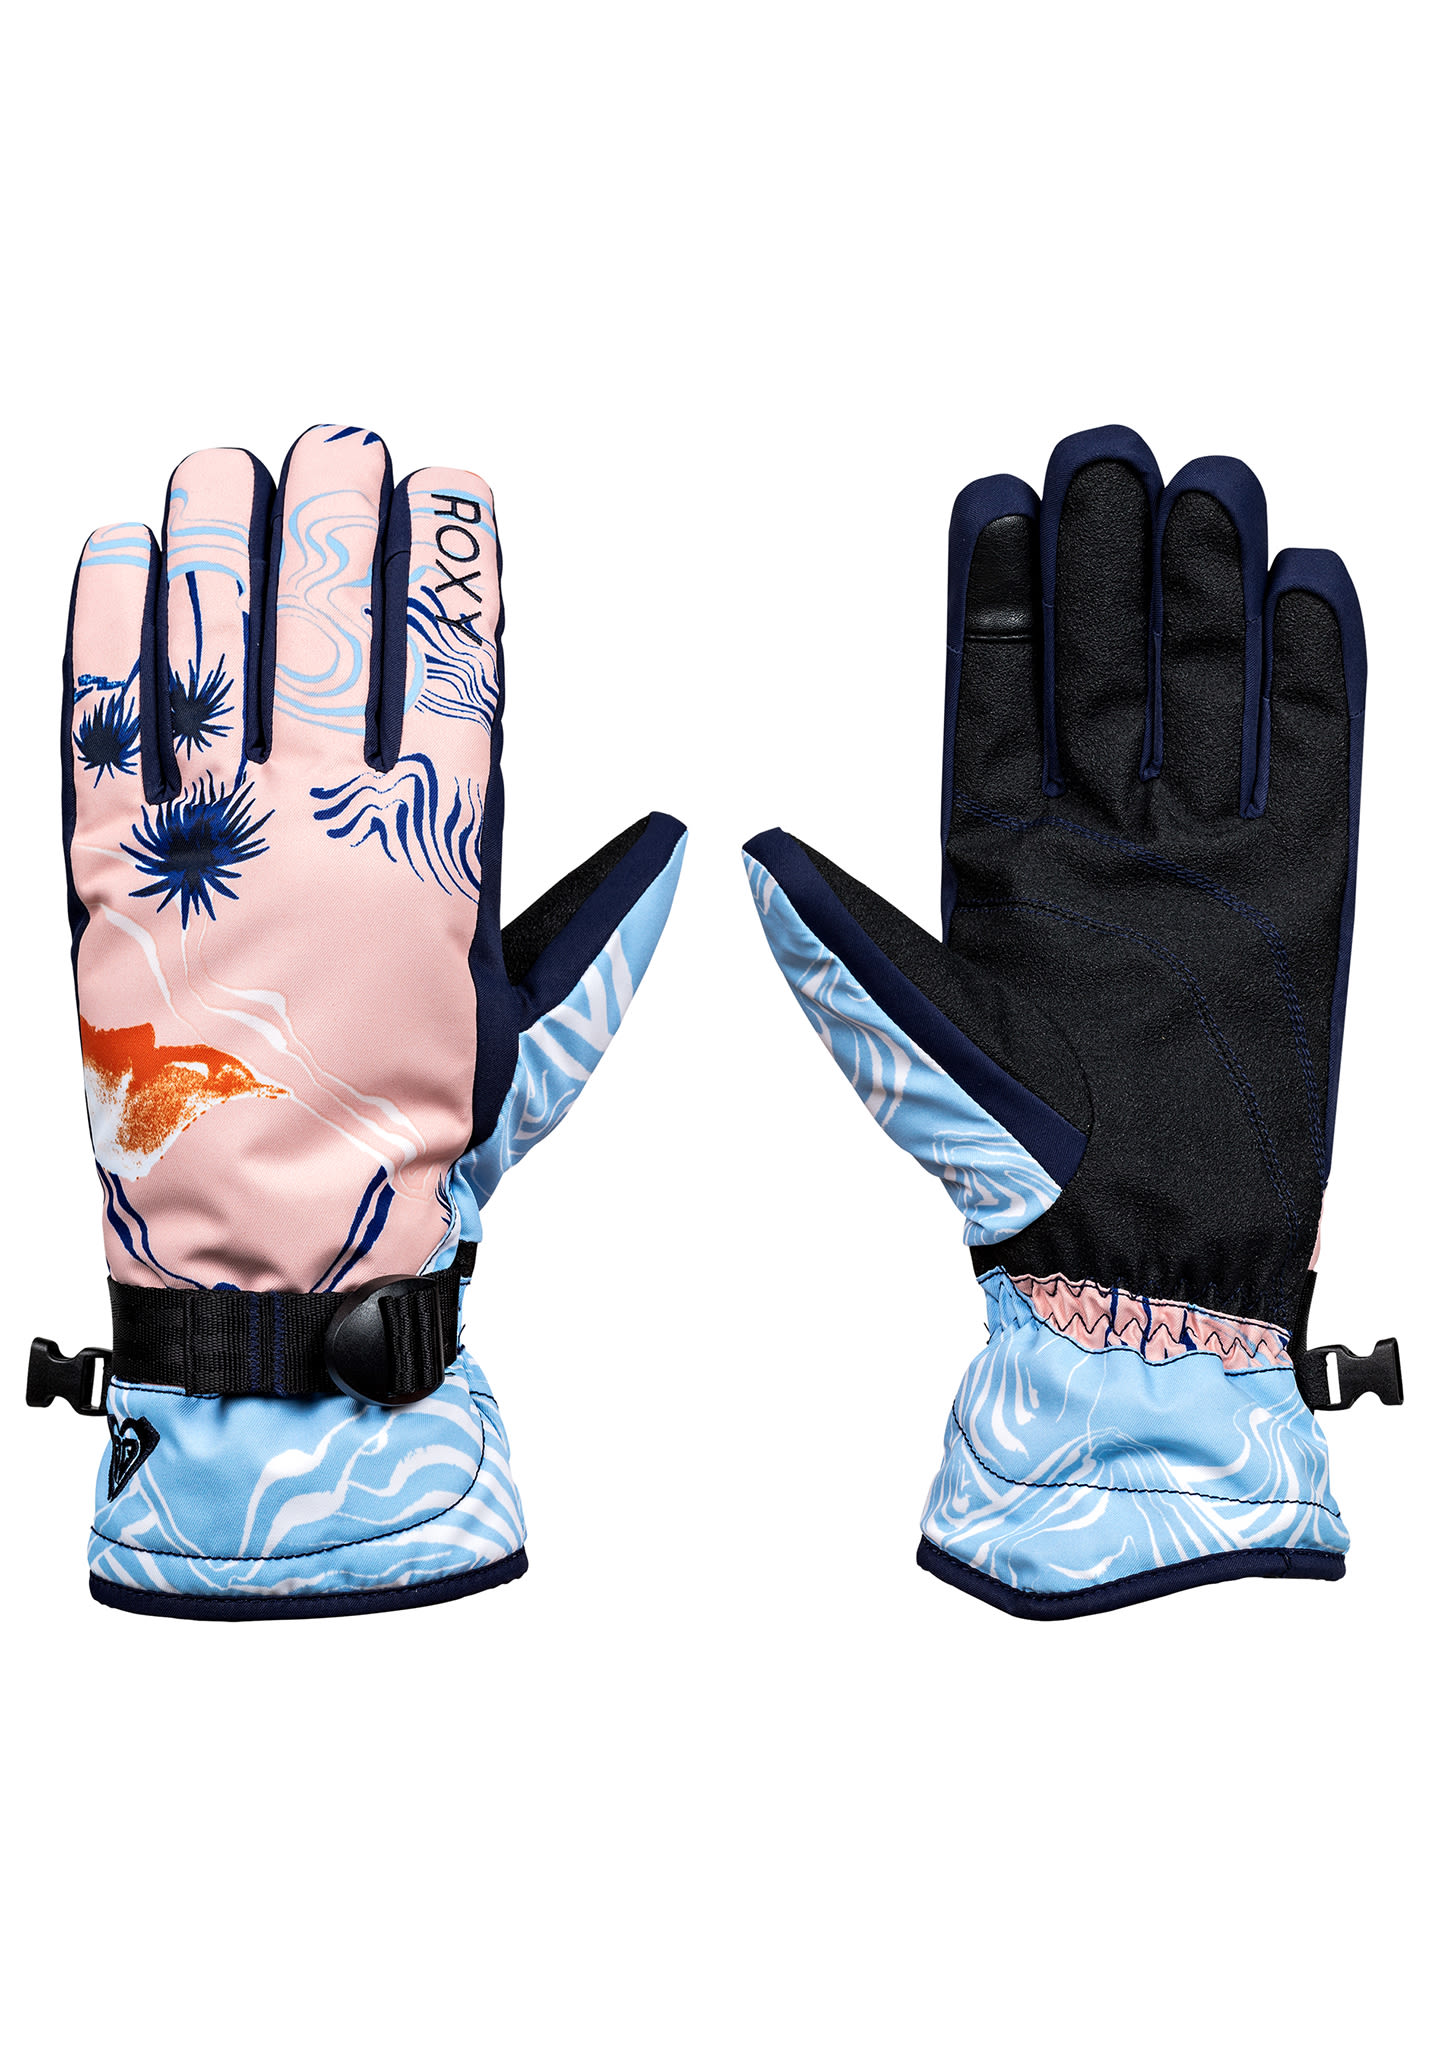 6712e60e244795 Roxy Jetty - Snowboard Handschuhe für Damen - Orange - Planet Sports